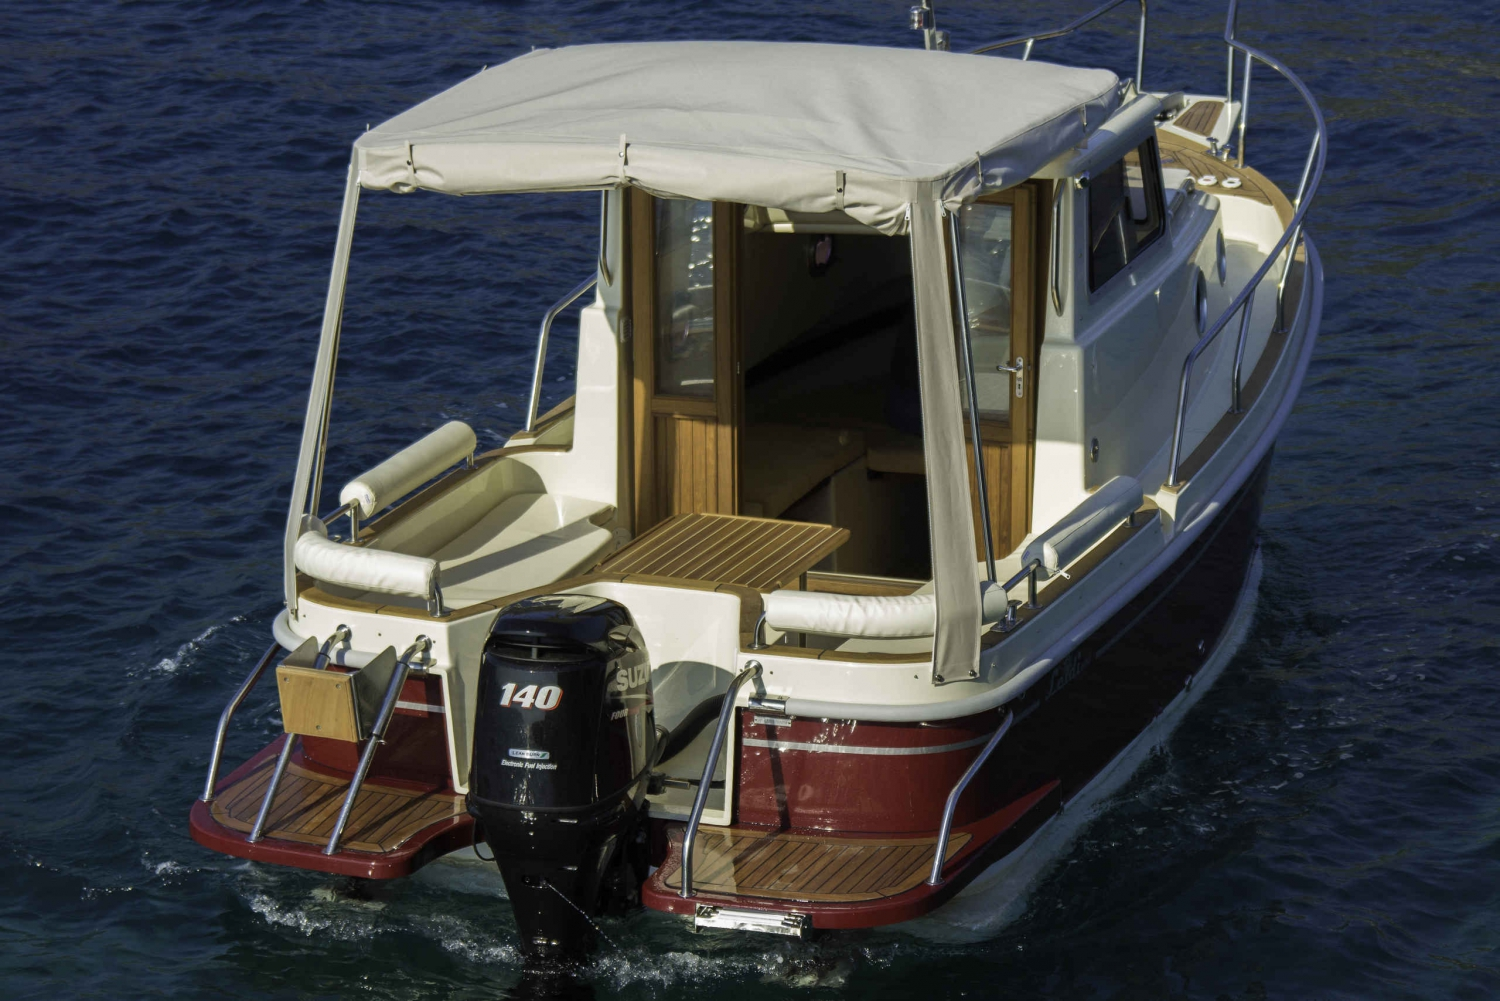 From Dubrovnik: Half-Day Private Boat Tour